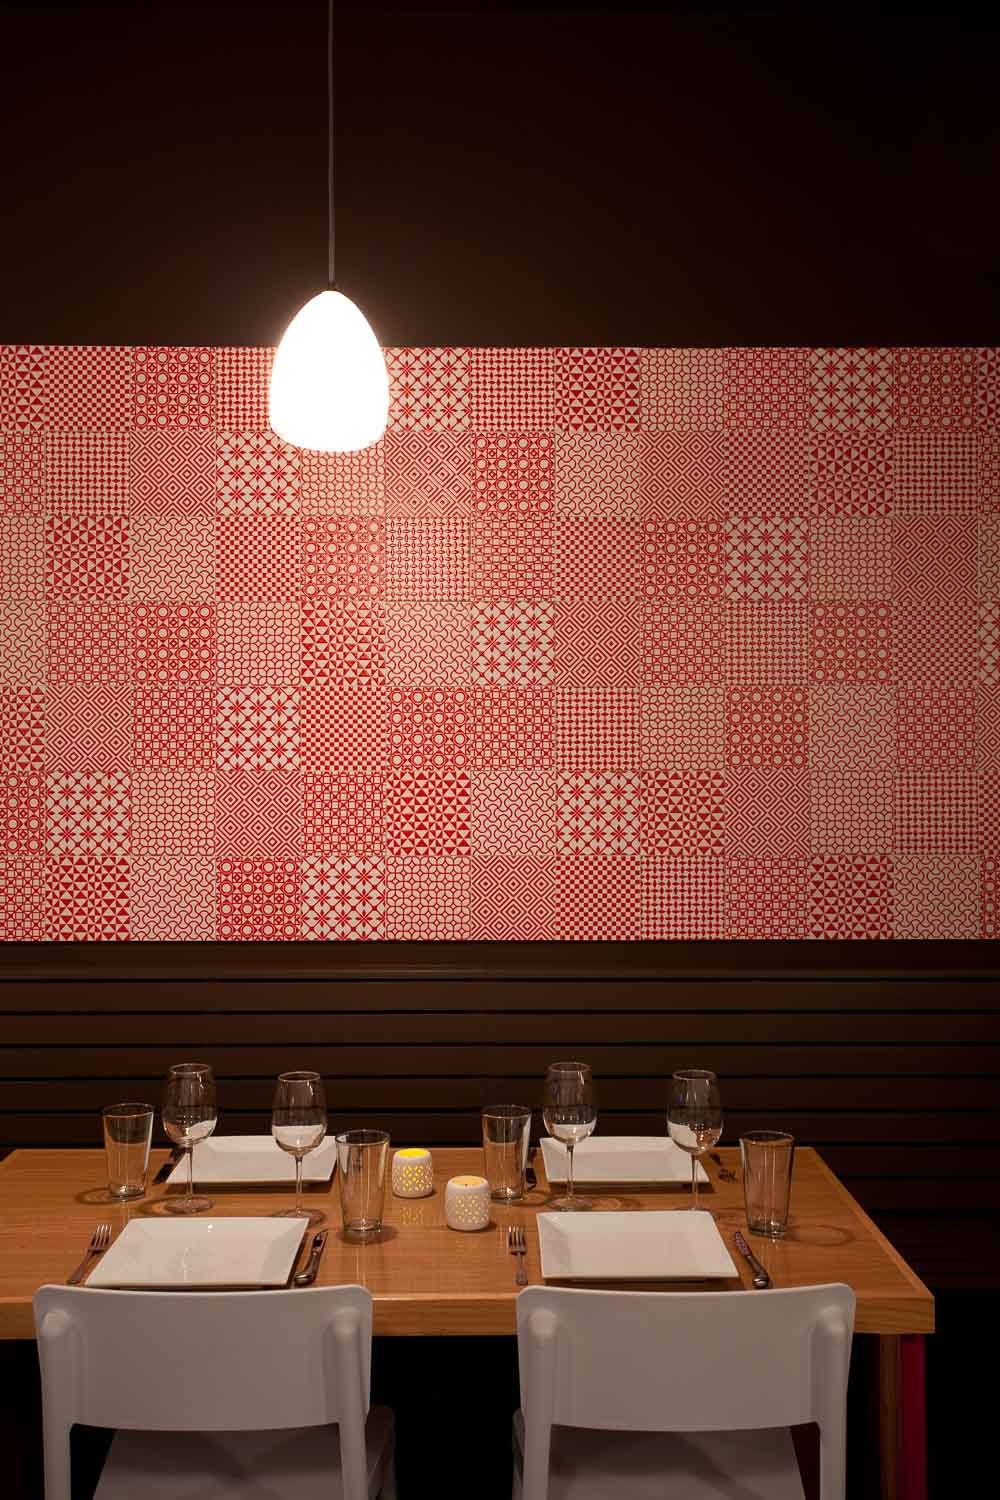 Restaurant Design Interiors. A Ceramic Wall made of Handmade Tiles